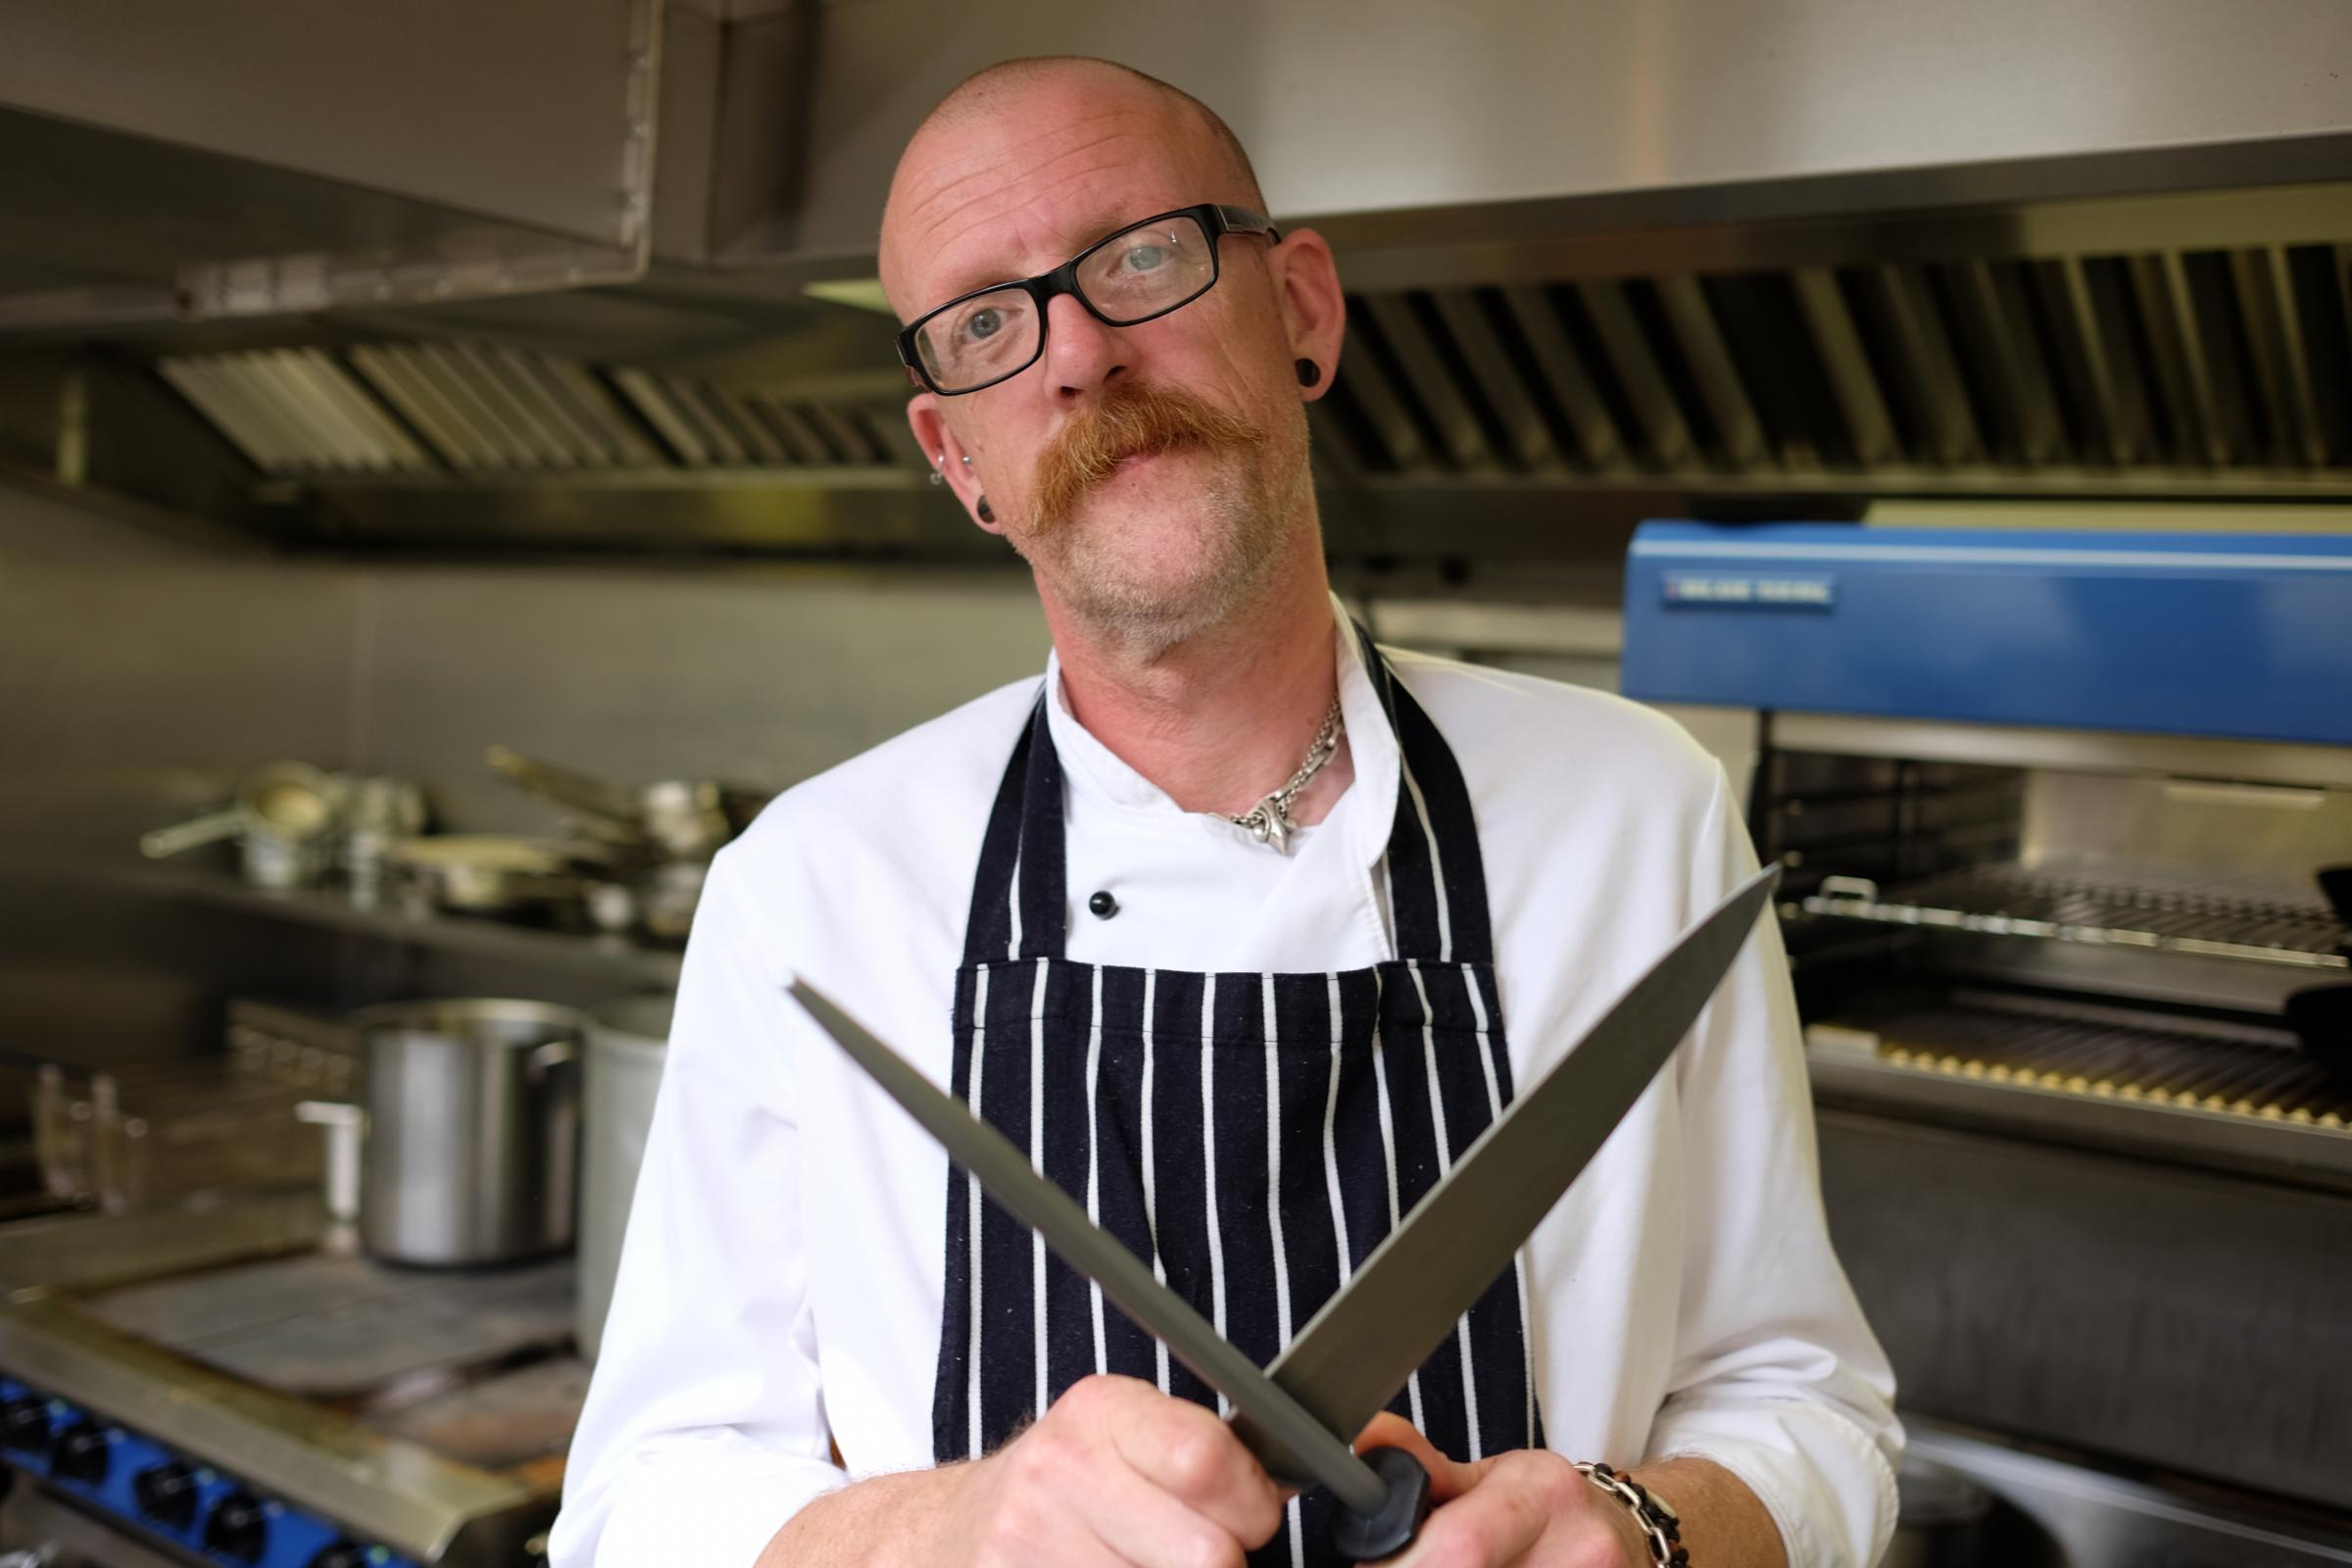 Chef Matt Read sharpens one of his kitchen knives